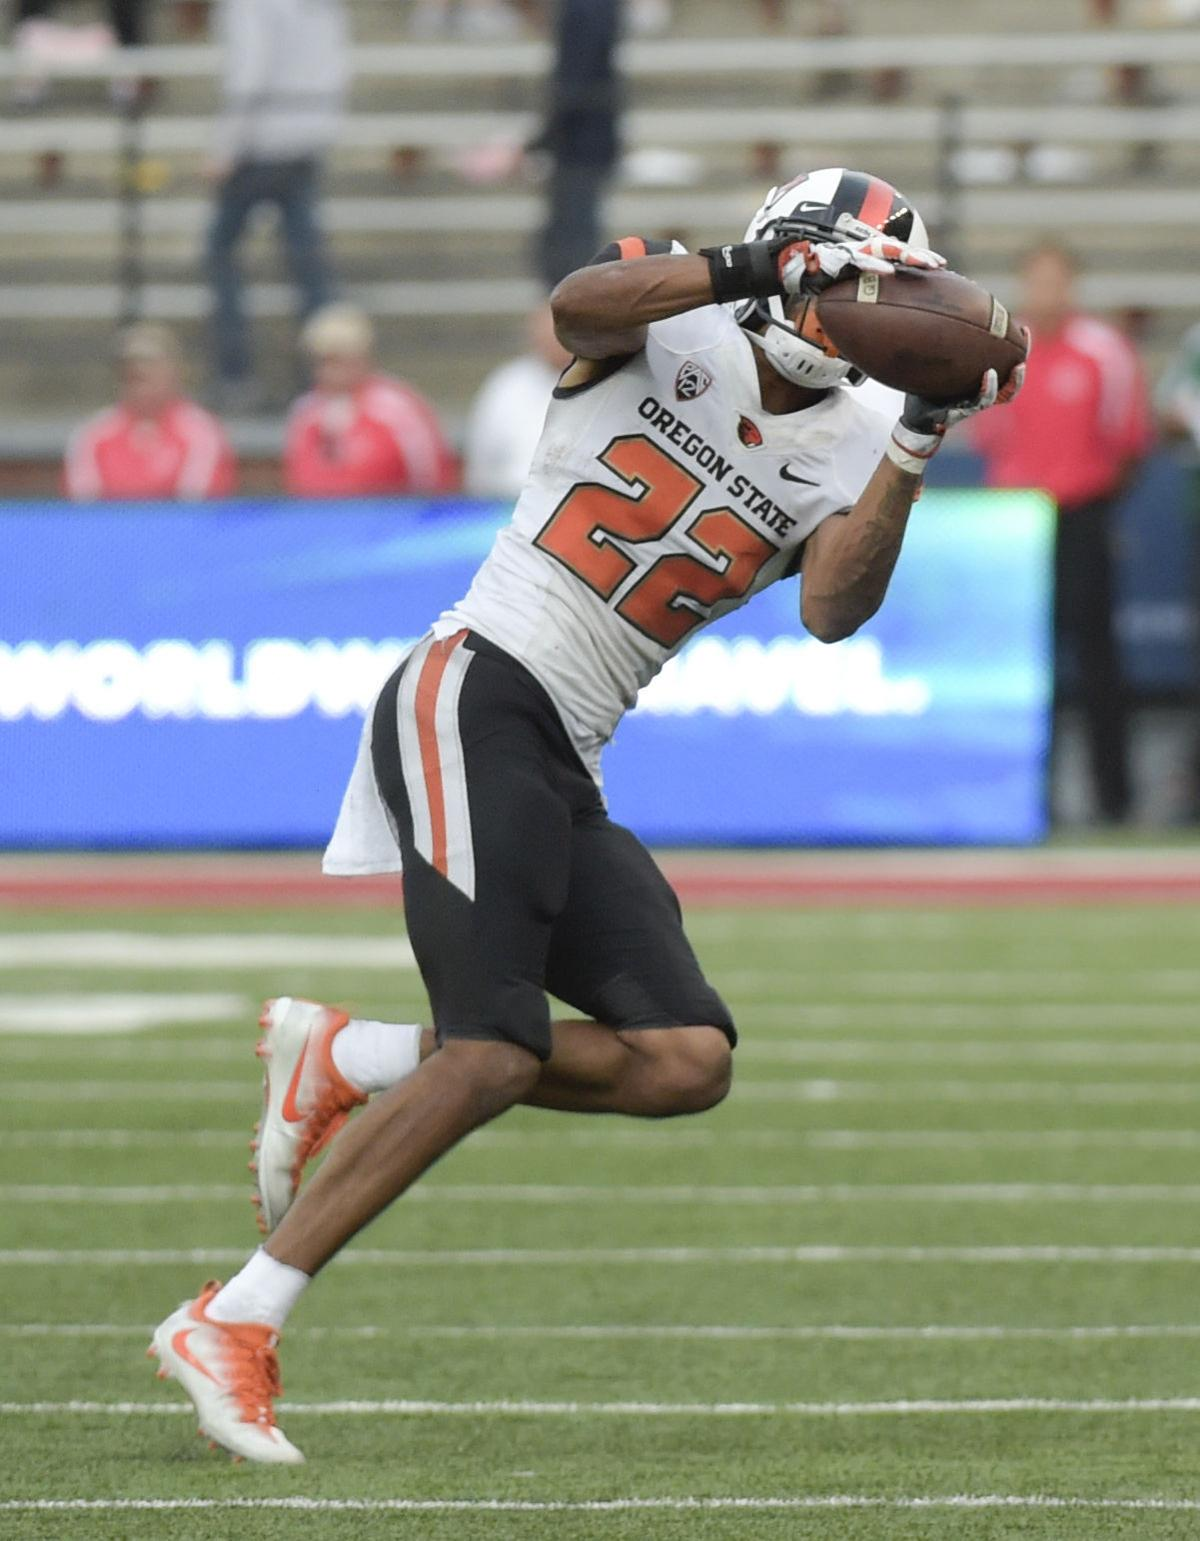 Oregon State vs. Washington State Football (copy)